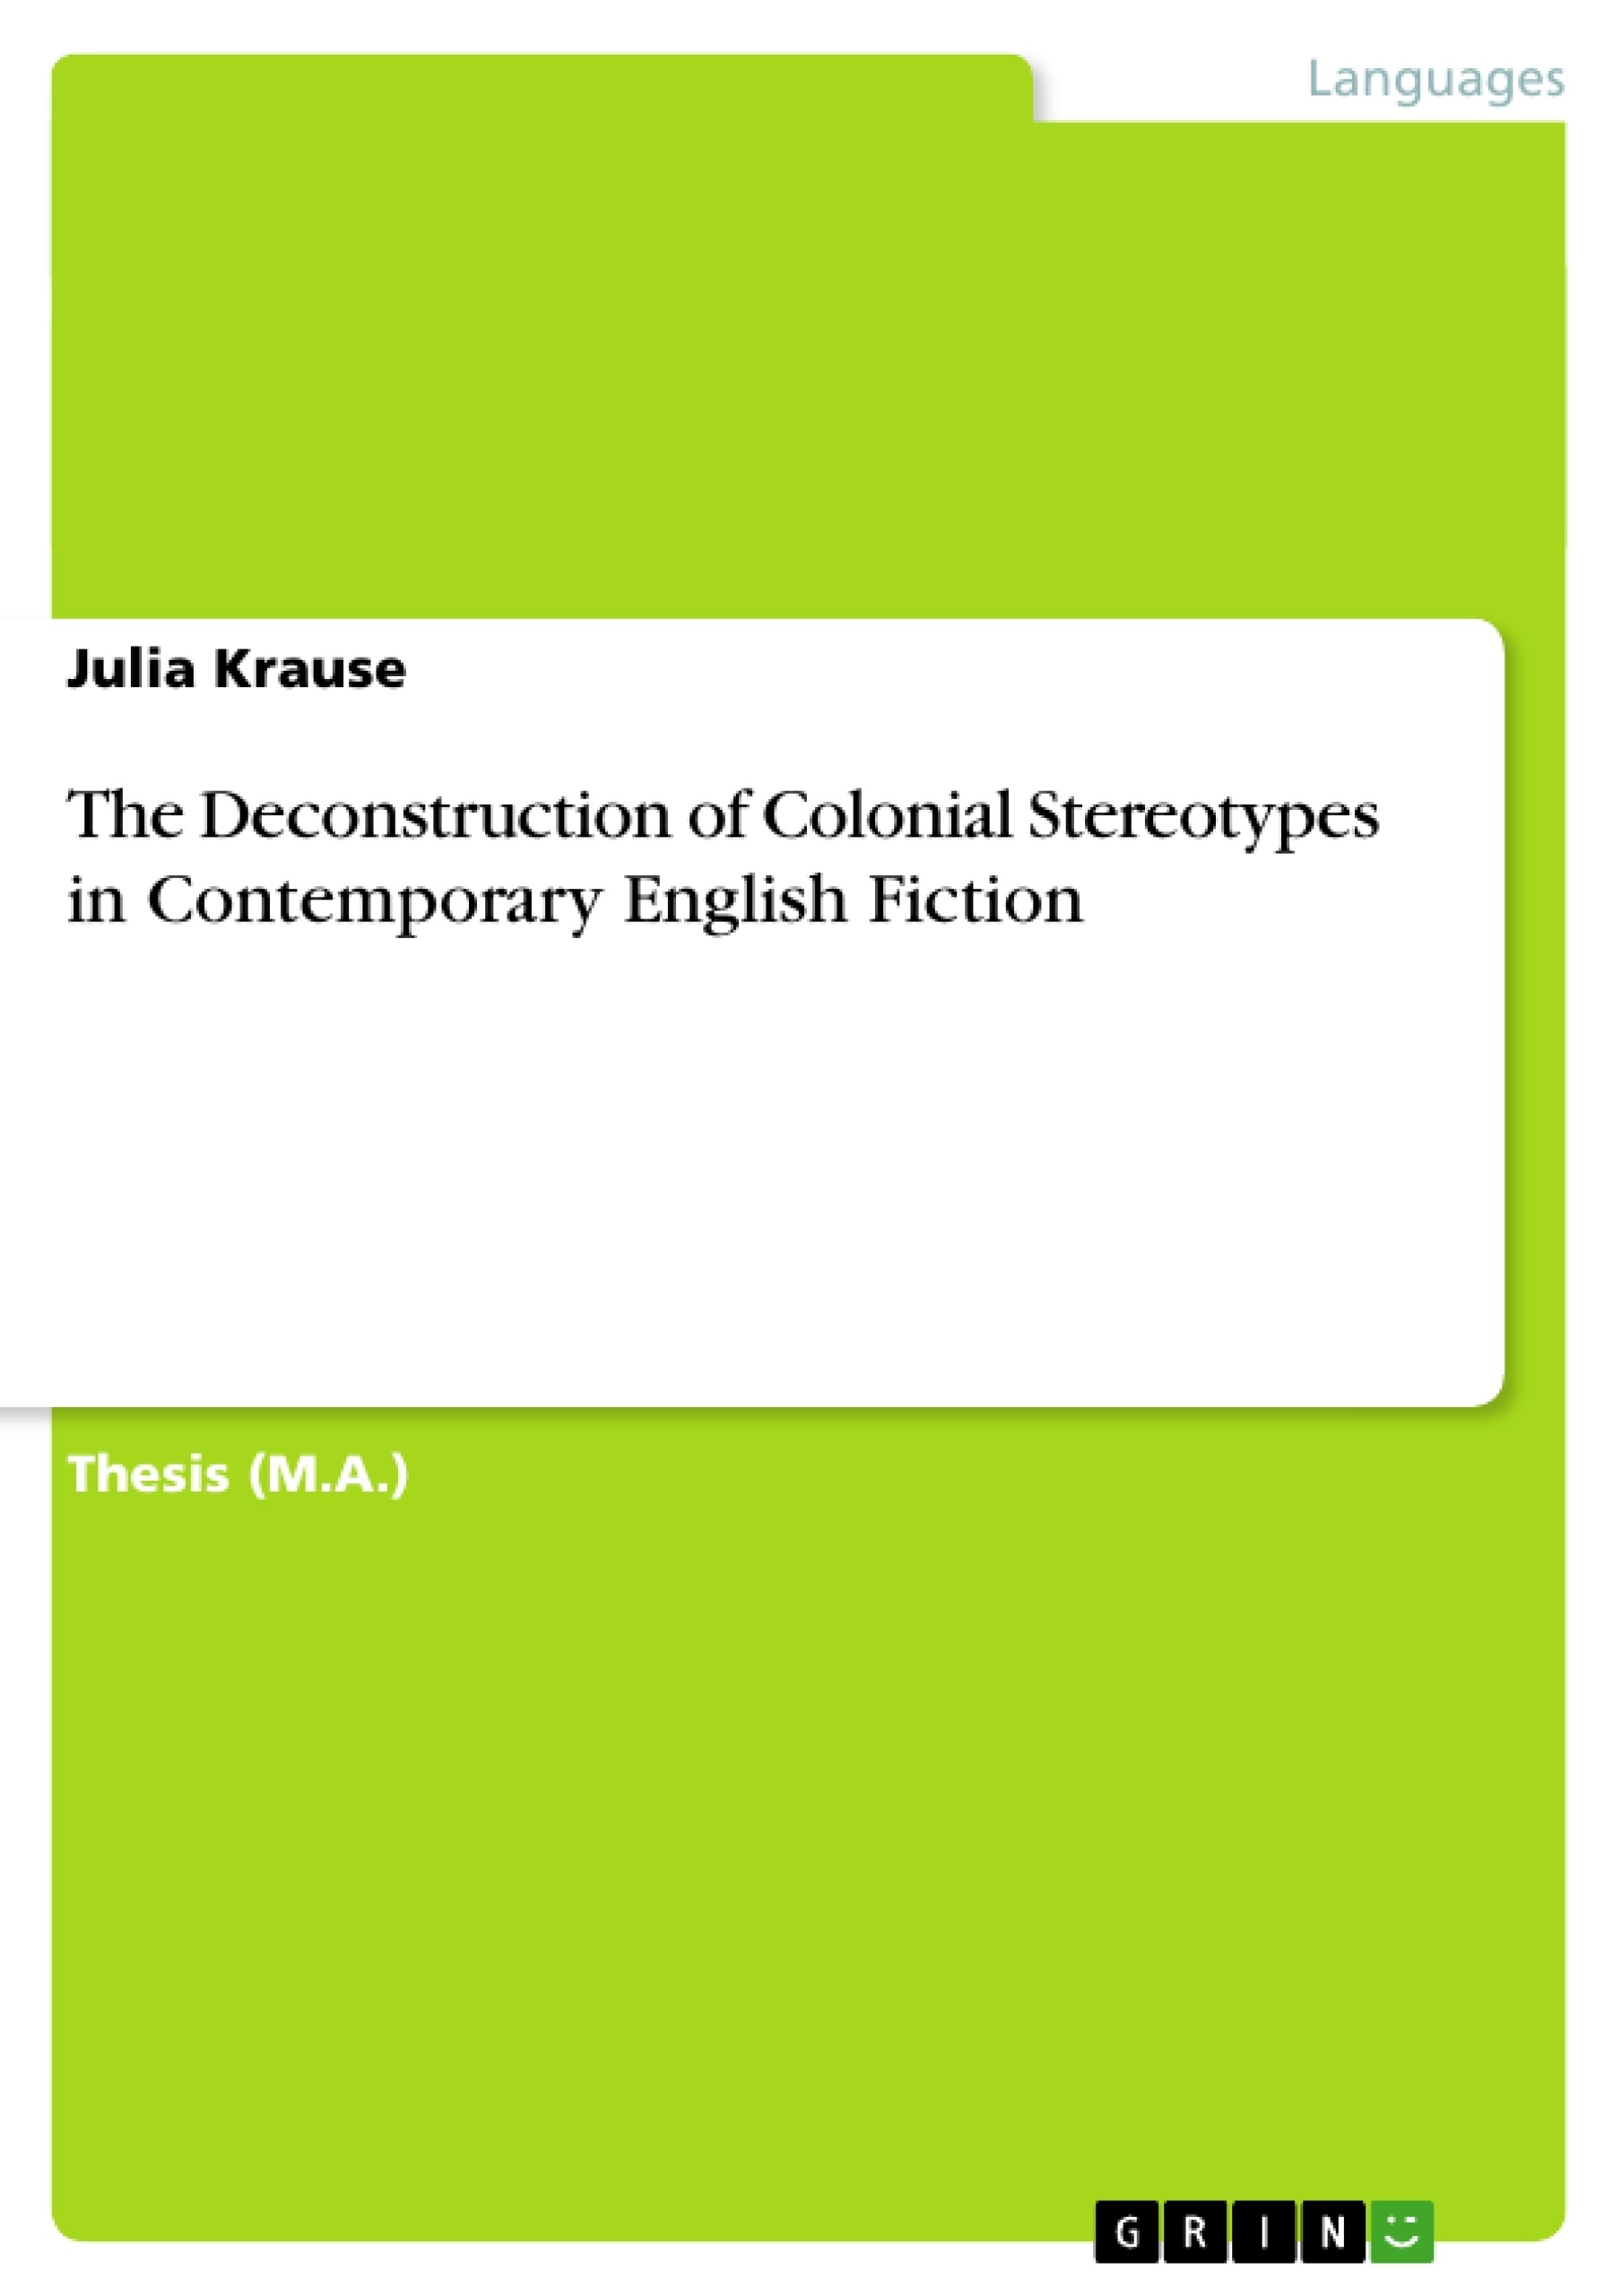 Title: The Deconstruction of Colonial Stereotypes in Contemporary English Fiction